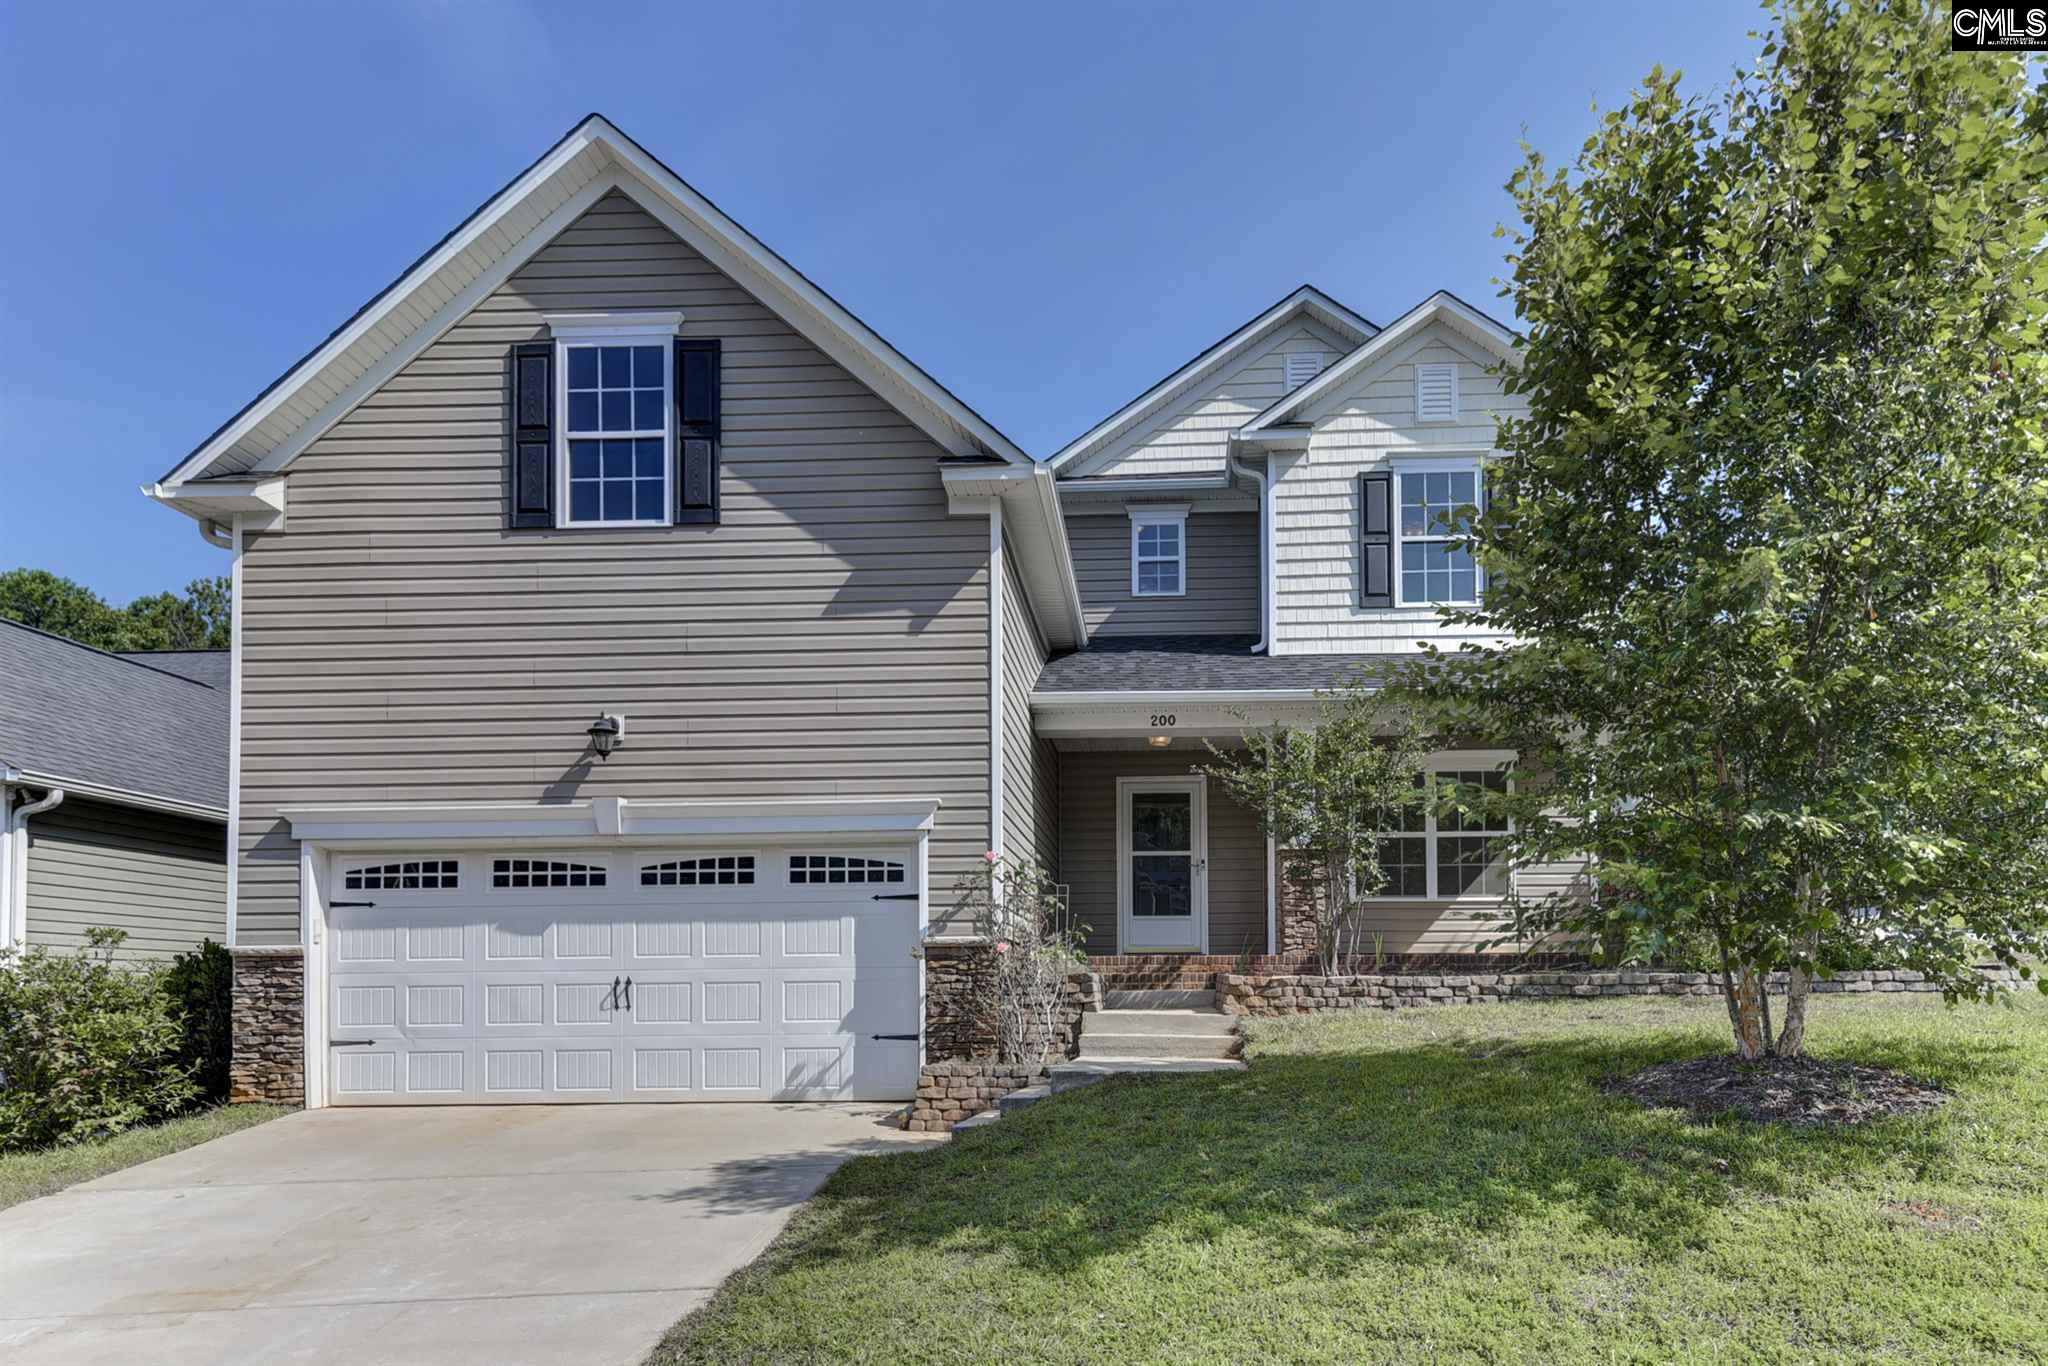 200 Allenbrooke Lexington, SC 29072